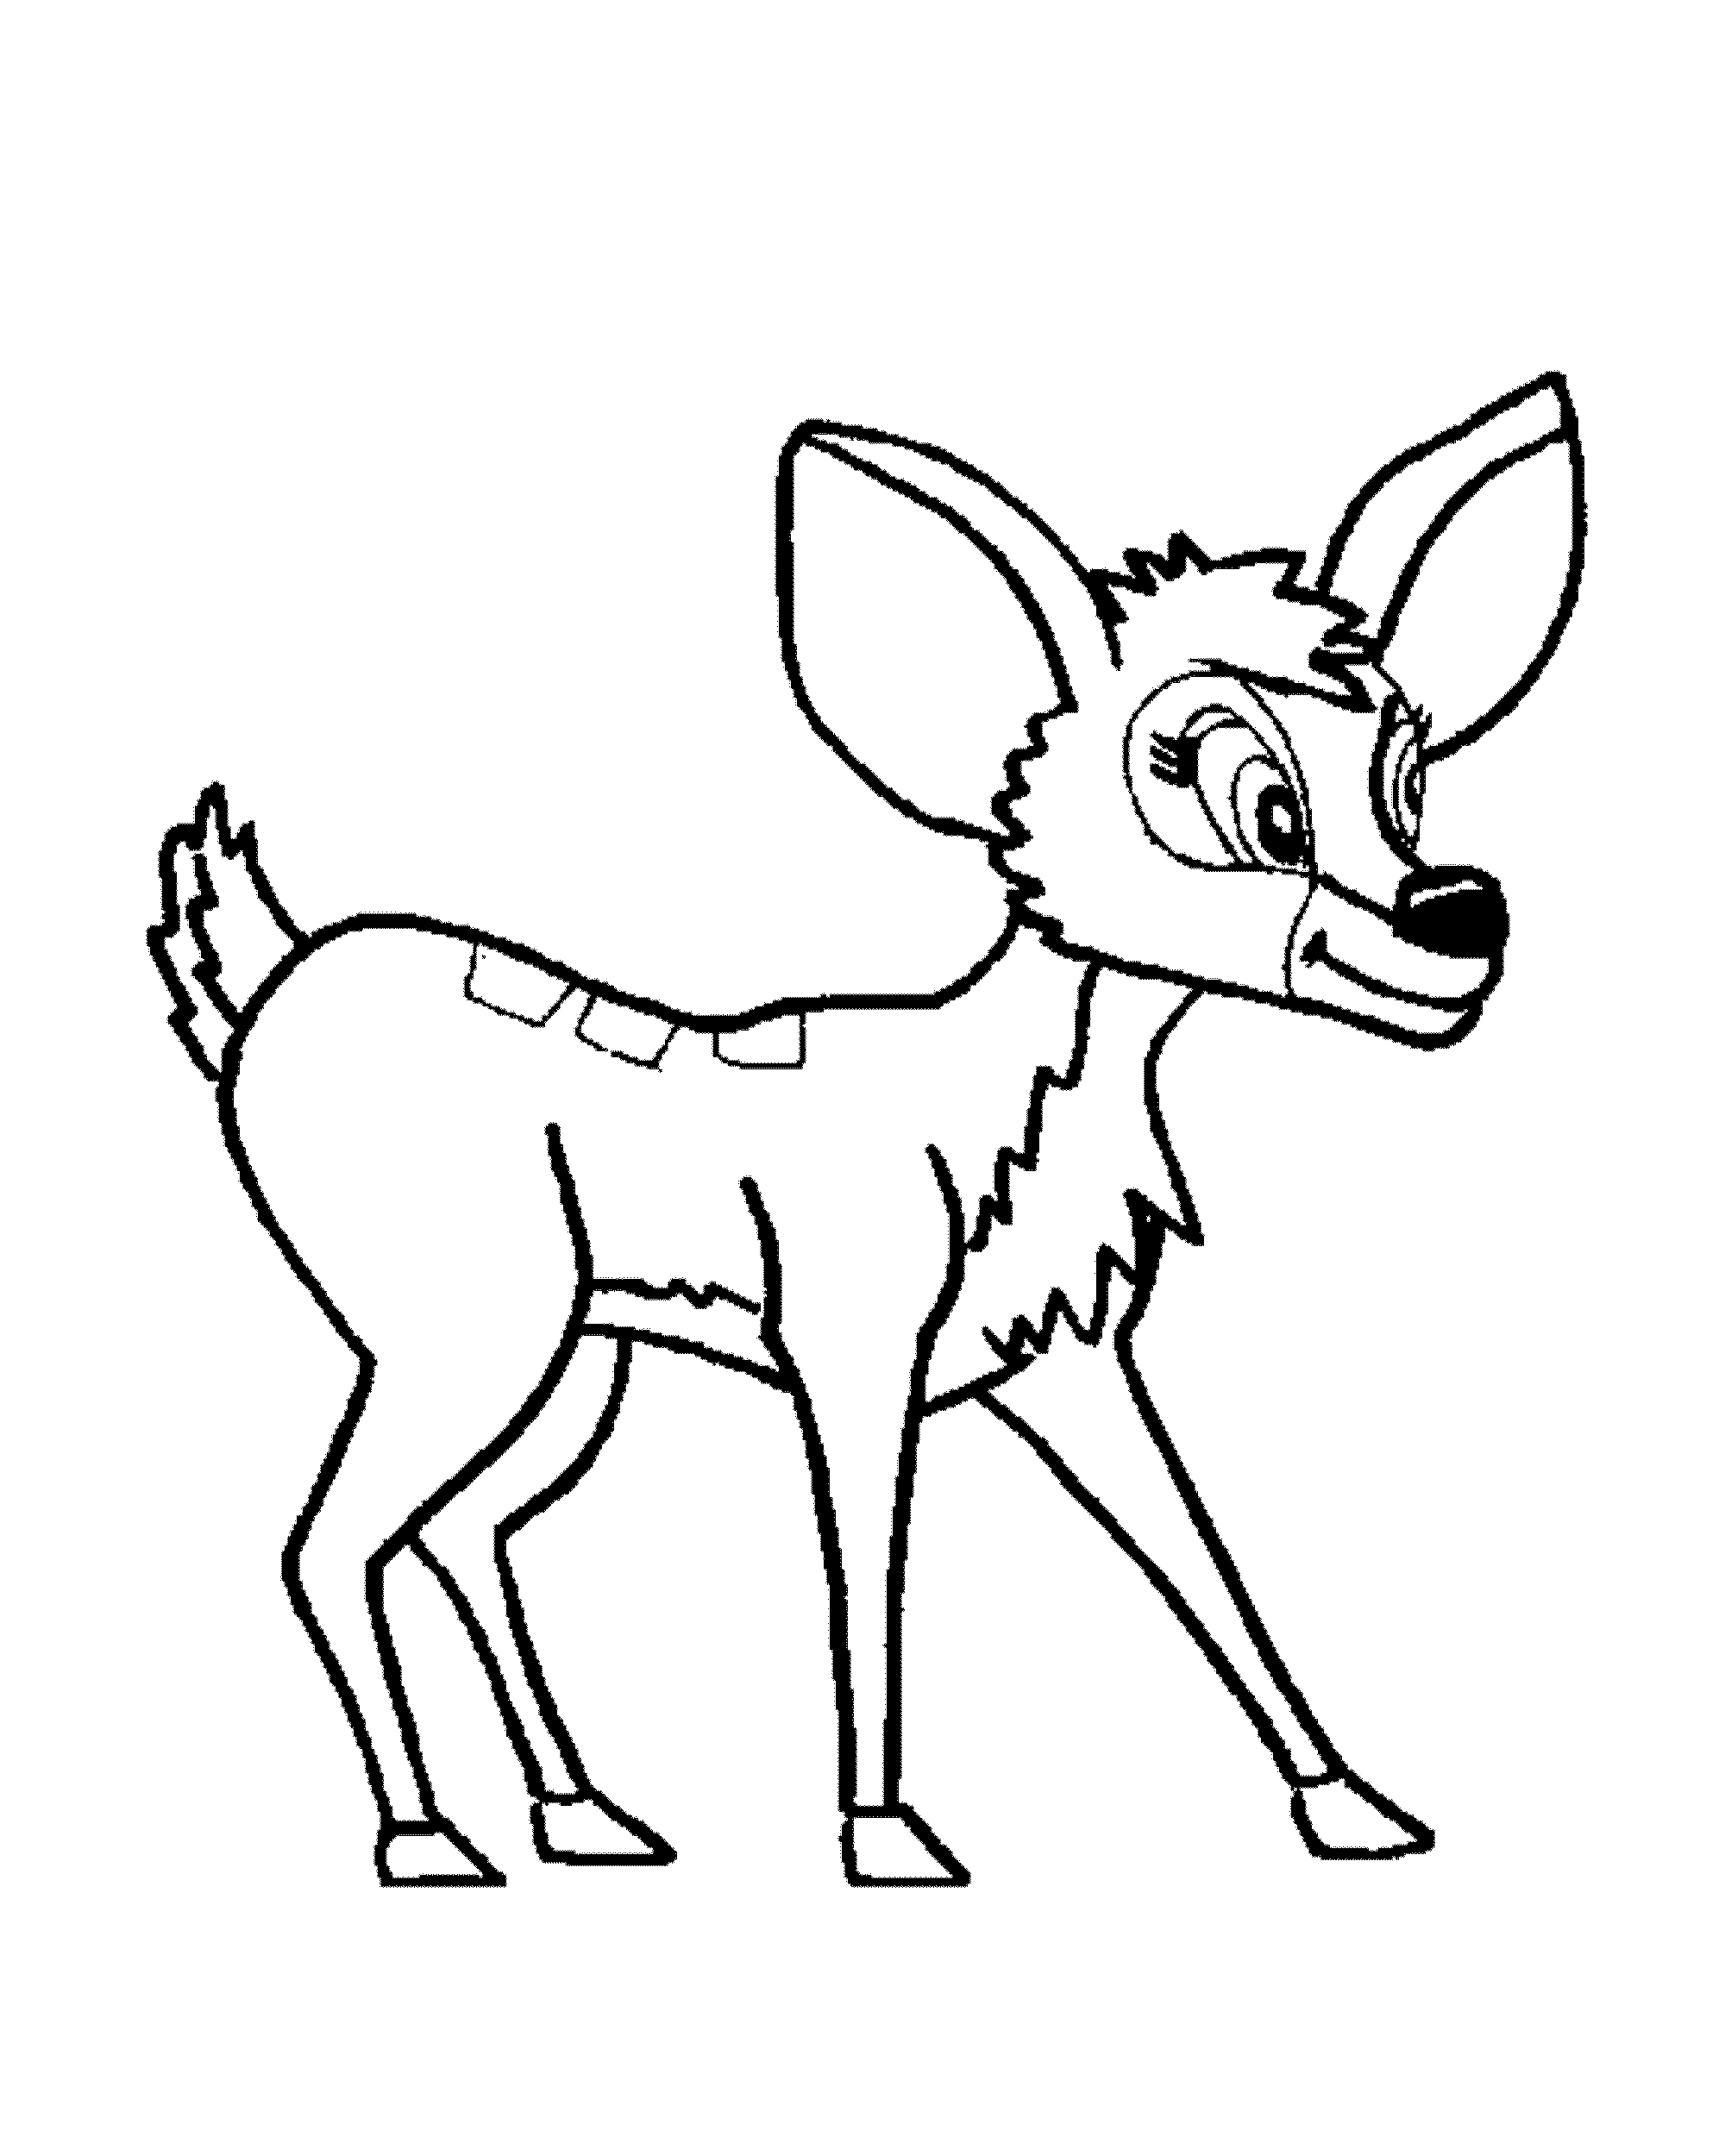 2000x2500 Deer Coloring Sheets To Print Kids Colouring Pages